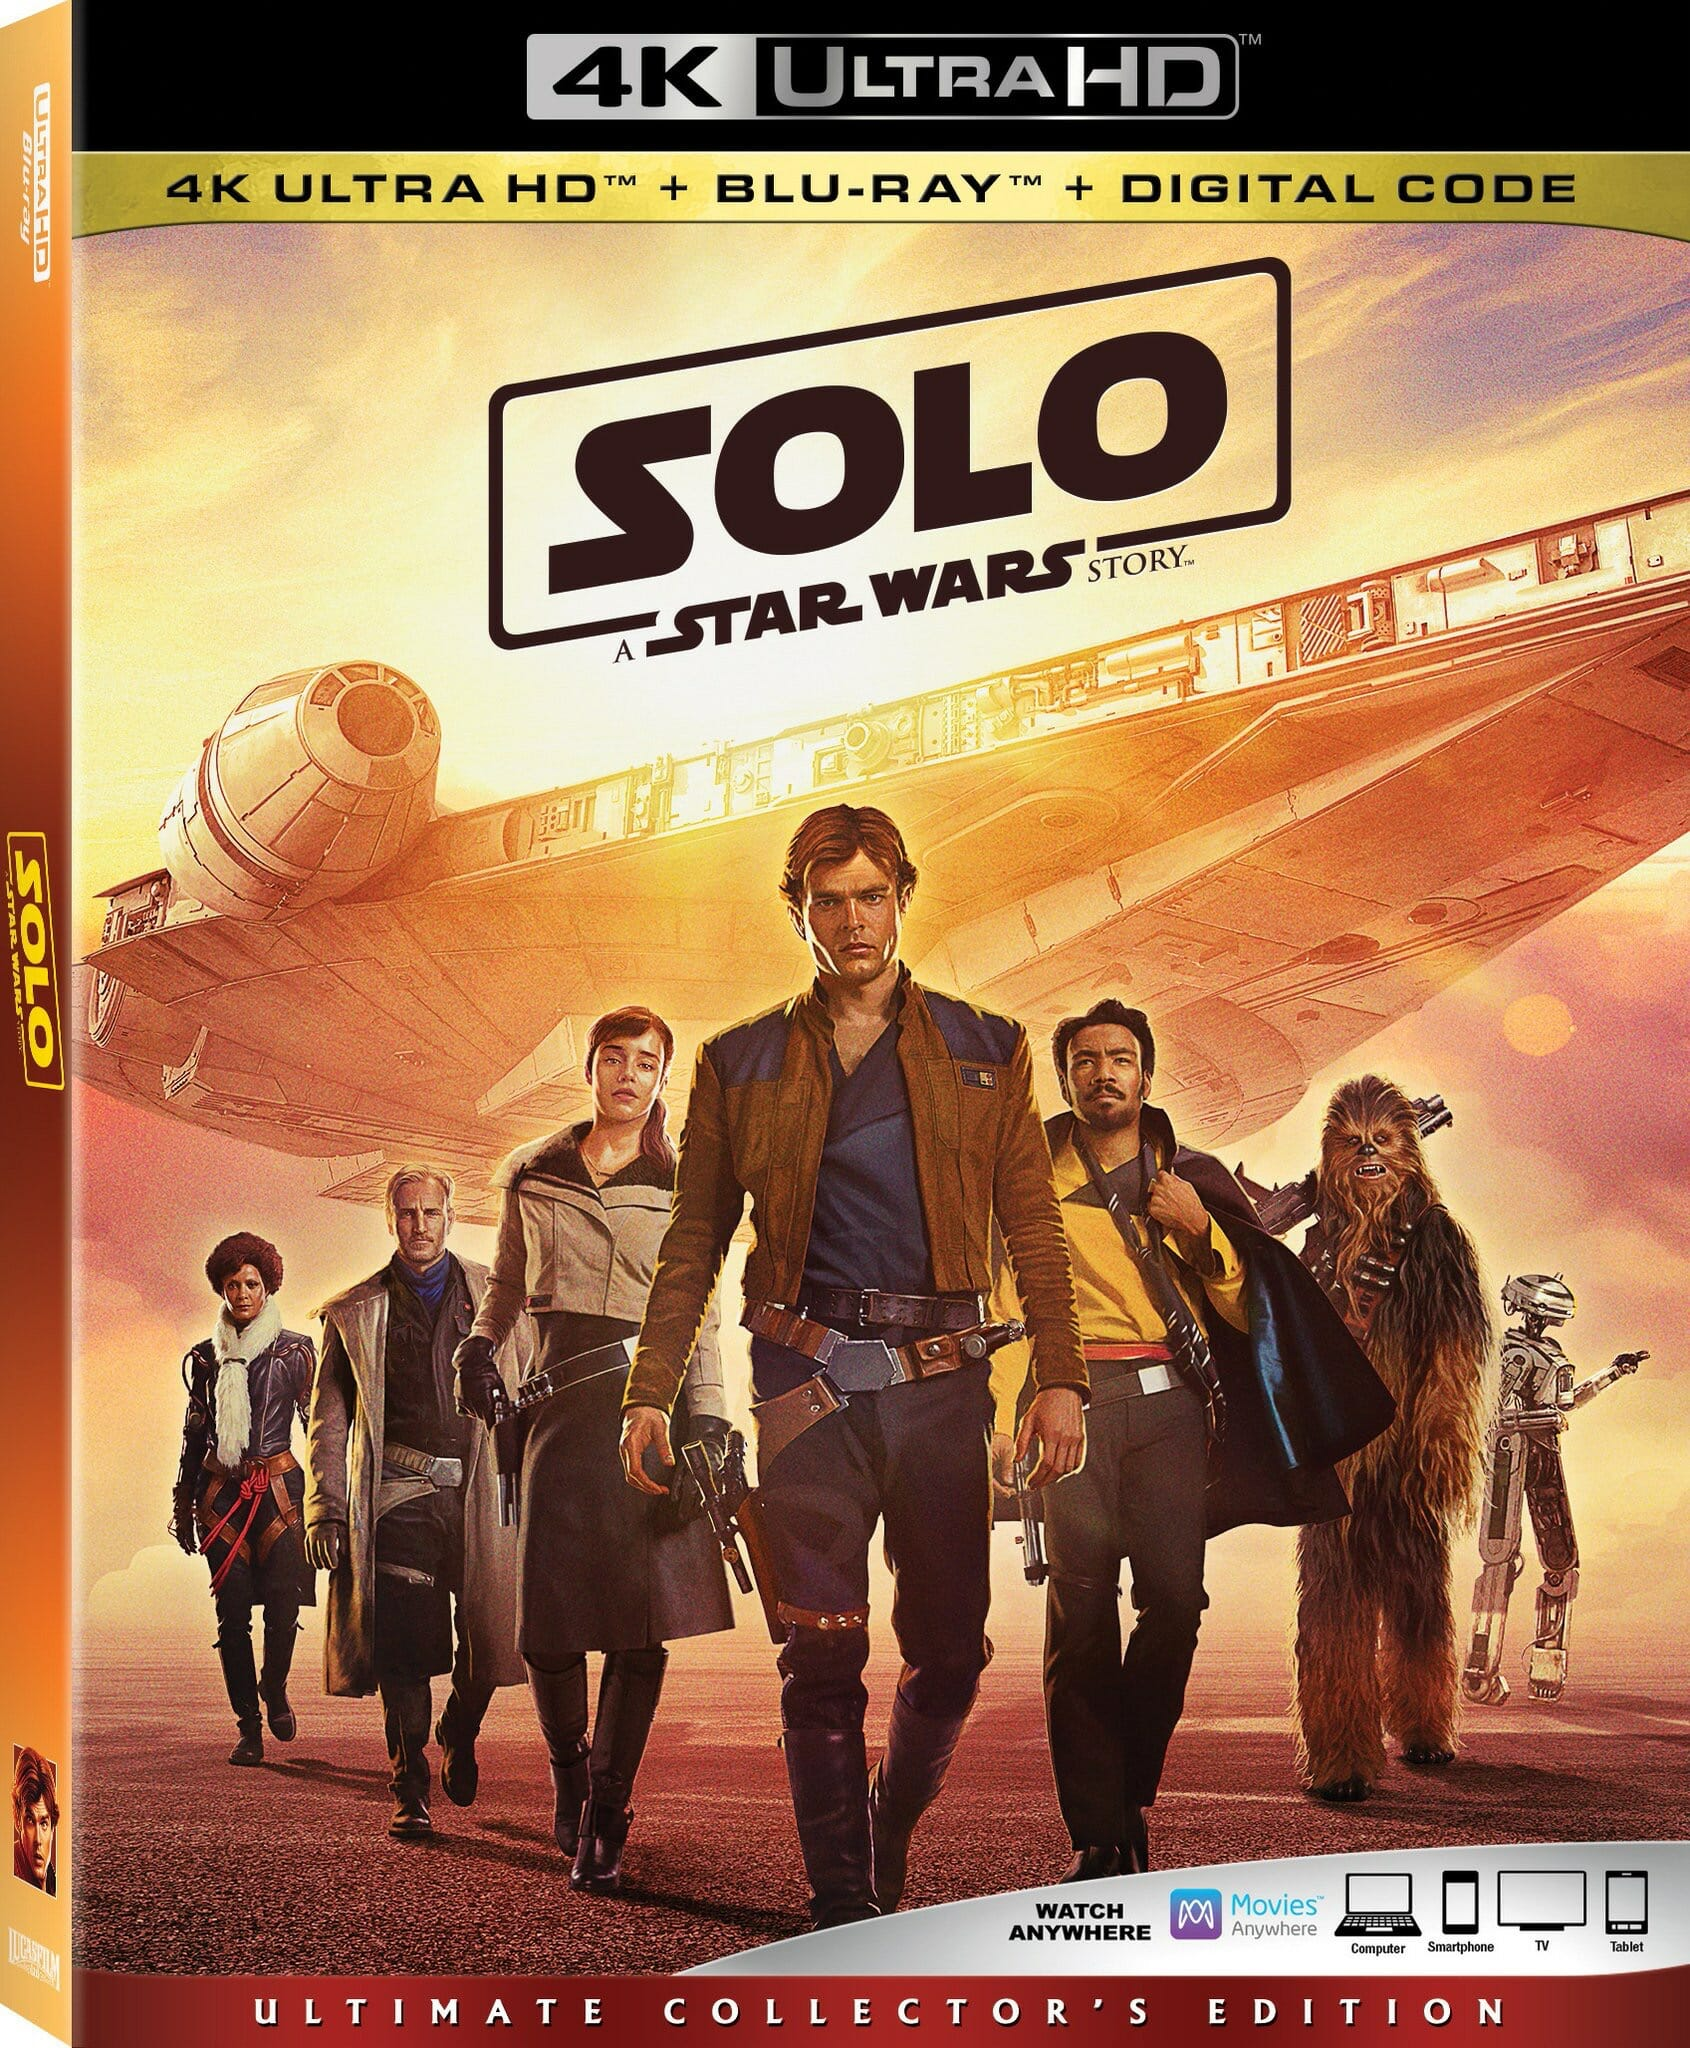 Solo: A Star Wars Story hits 4K digital September 14th! | Making